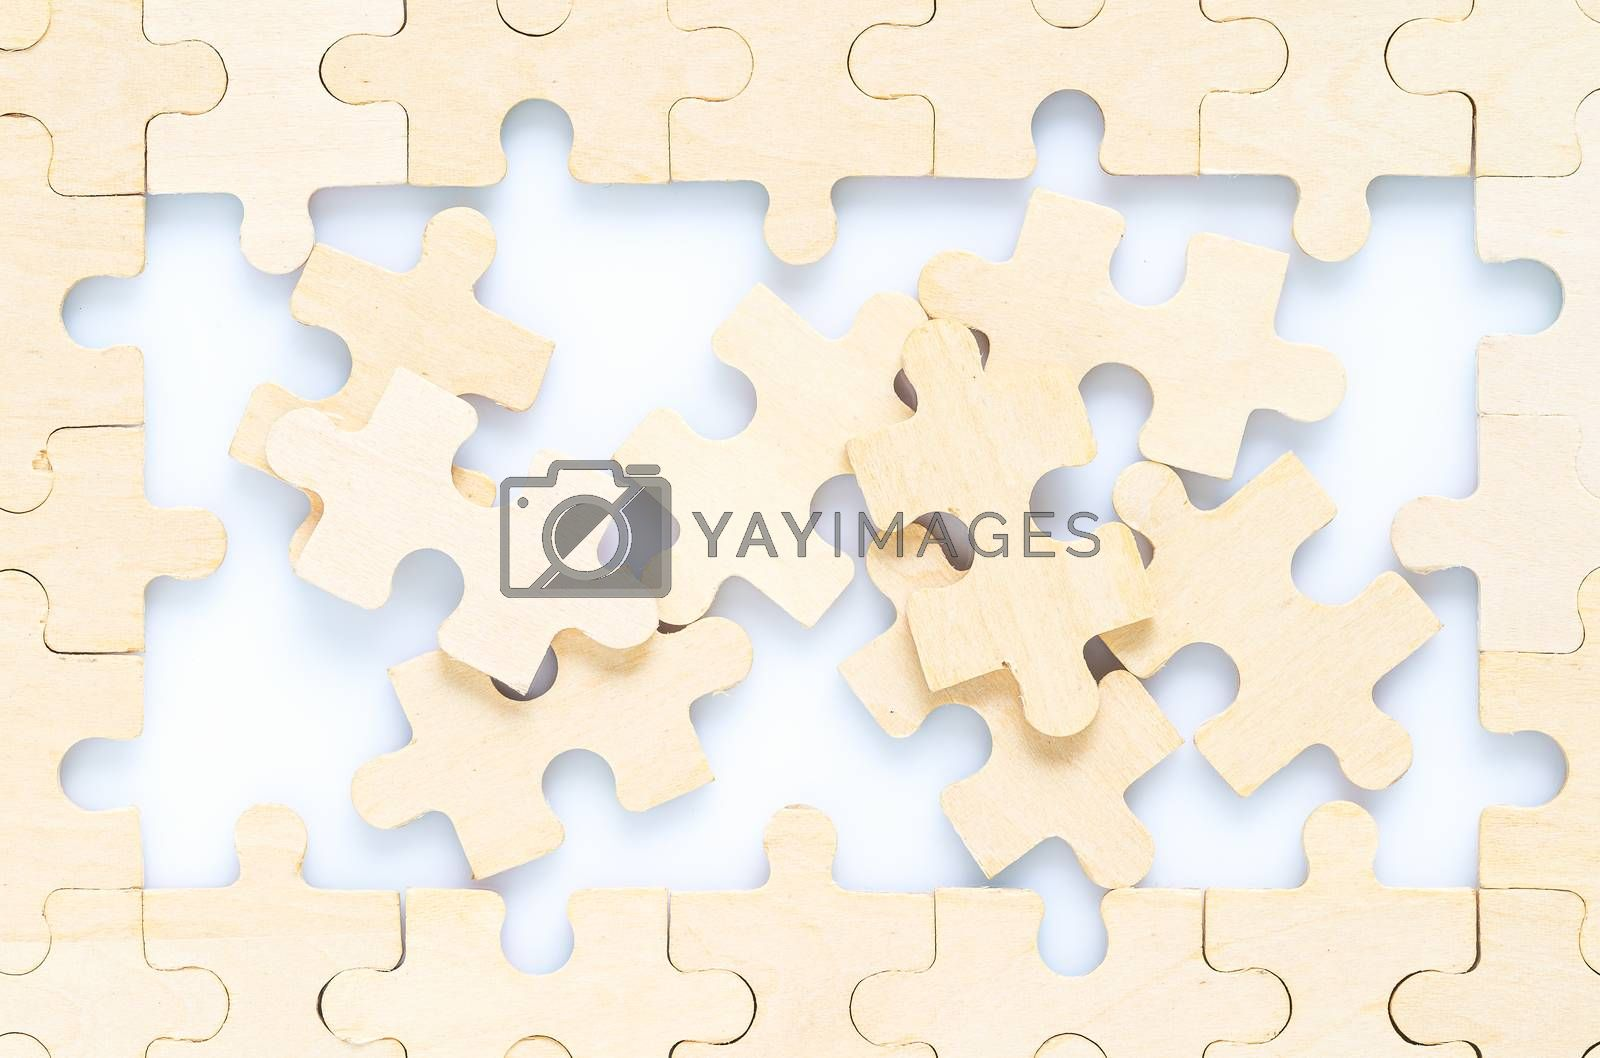 Shot of wooden jigsaw puzzle pieces on white background,Business concept